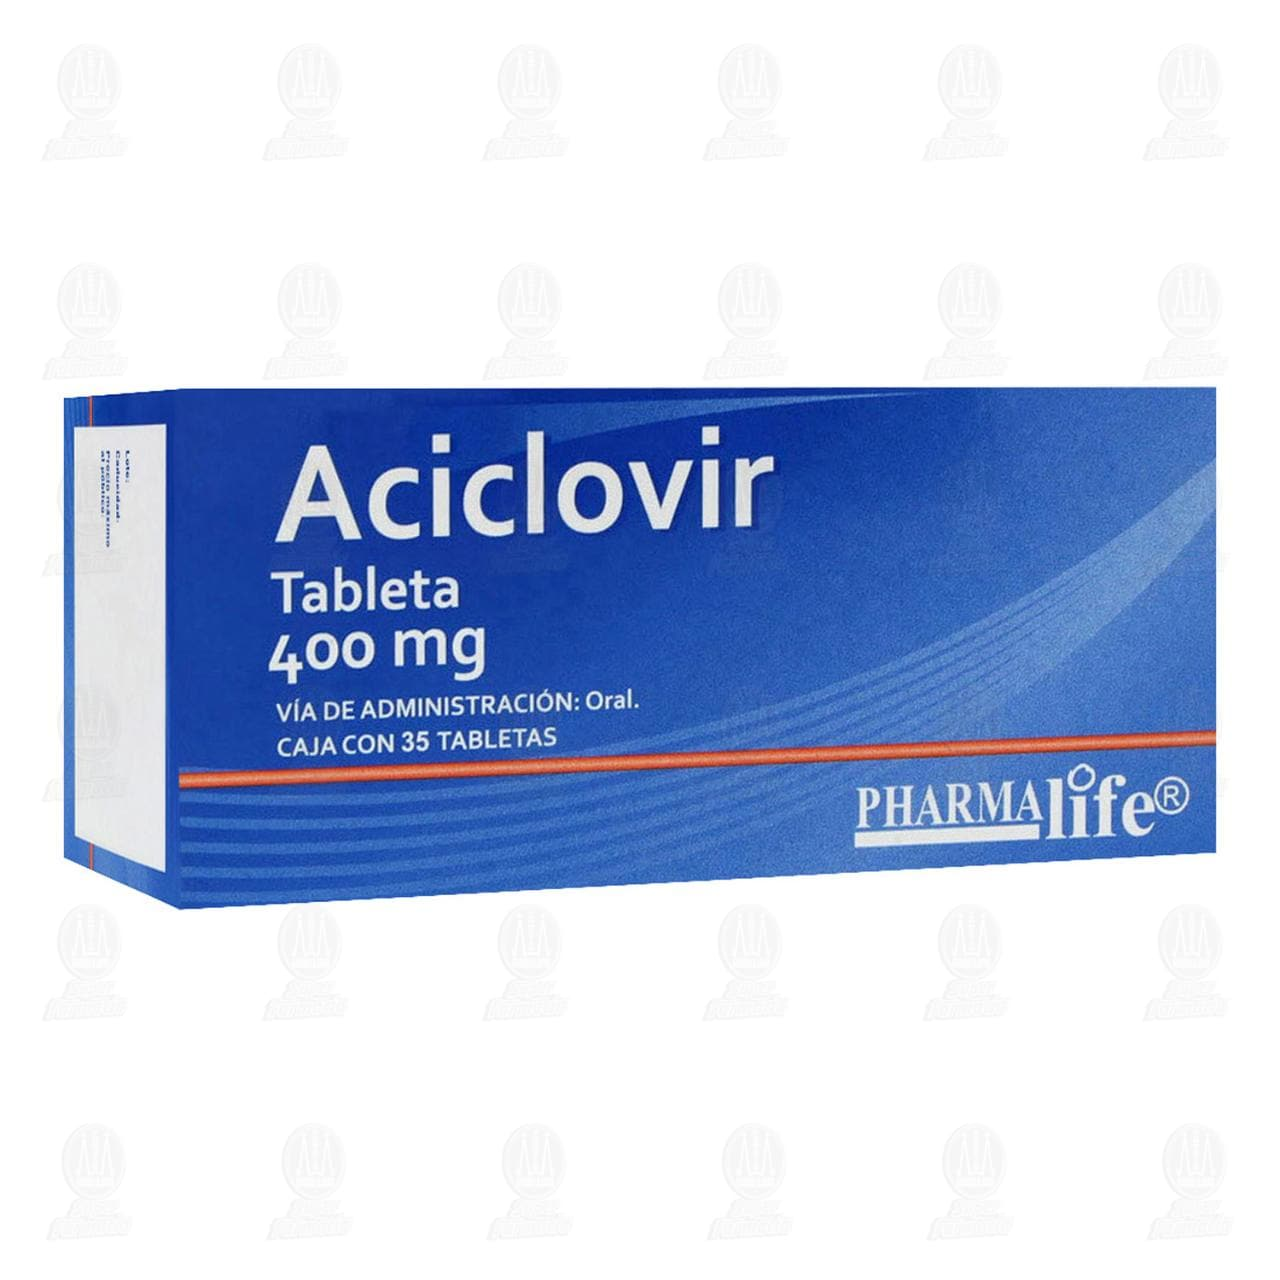 Aciclovir 400mg 35 Tabletas Pharmalife